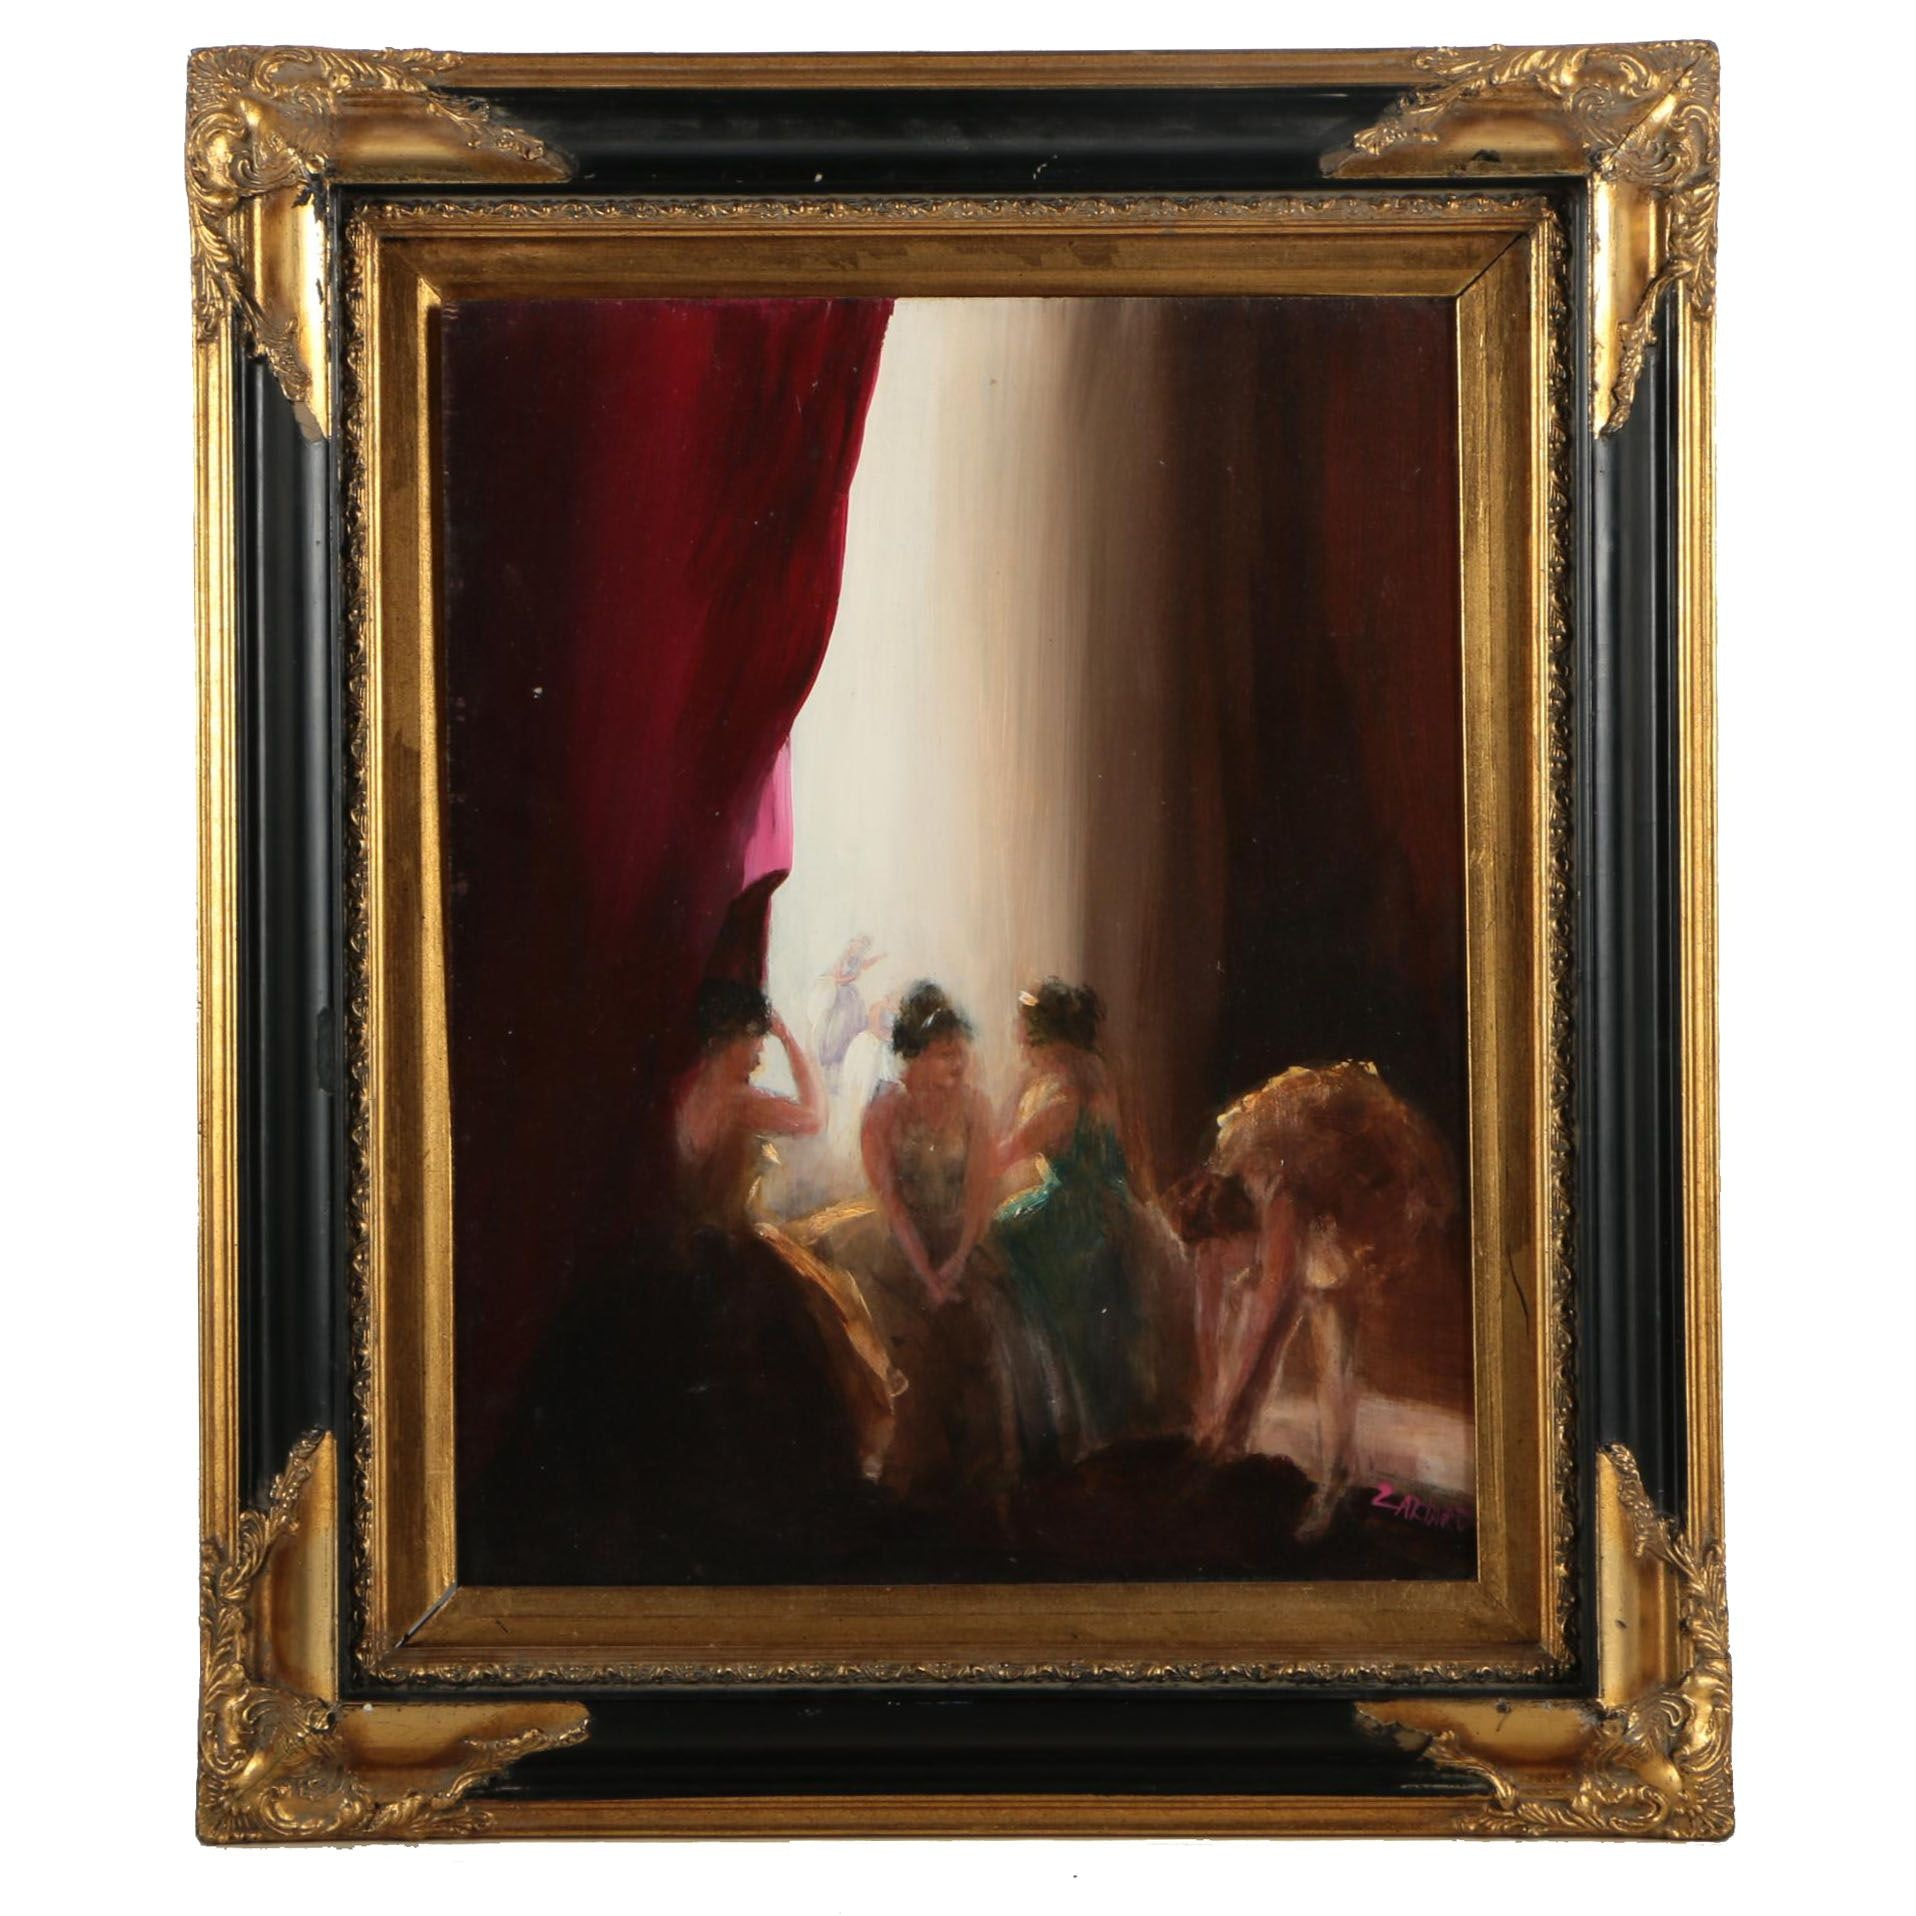 Oil Painting of Dancers on Board